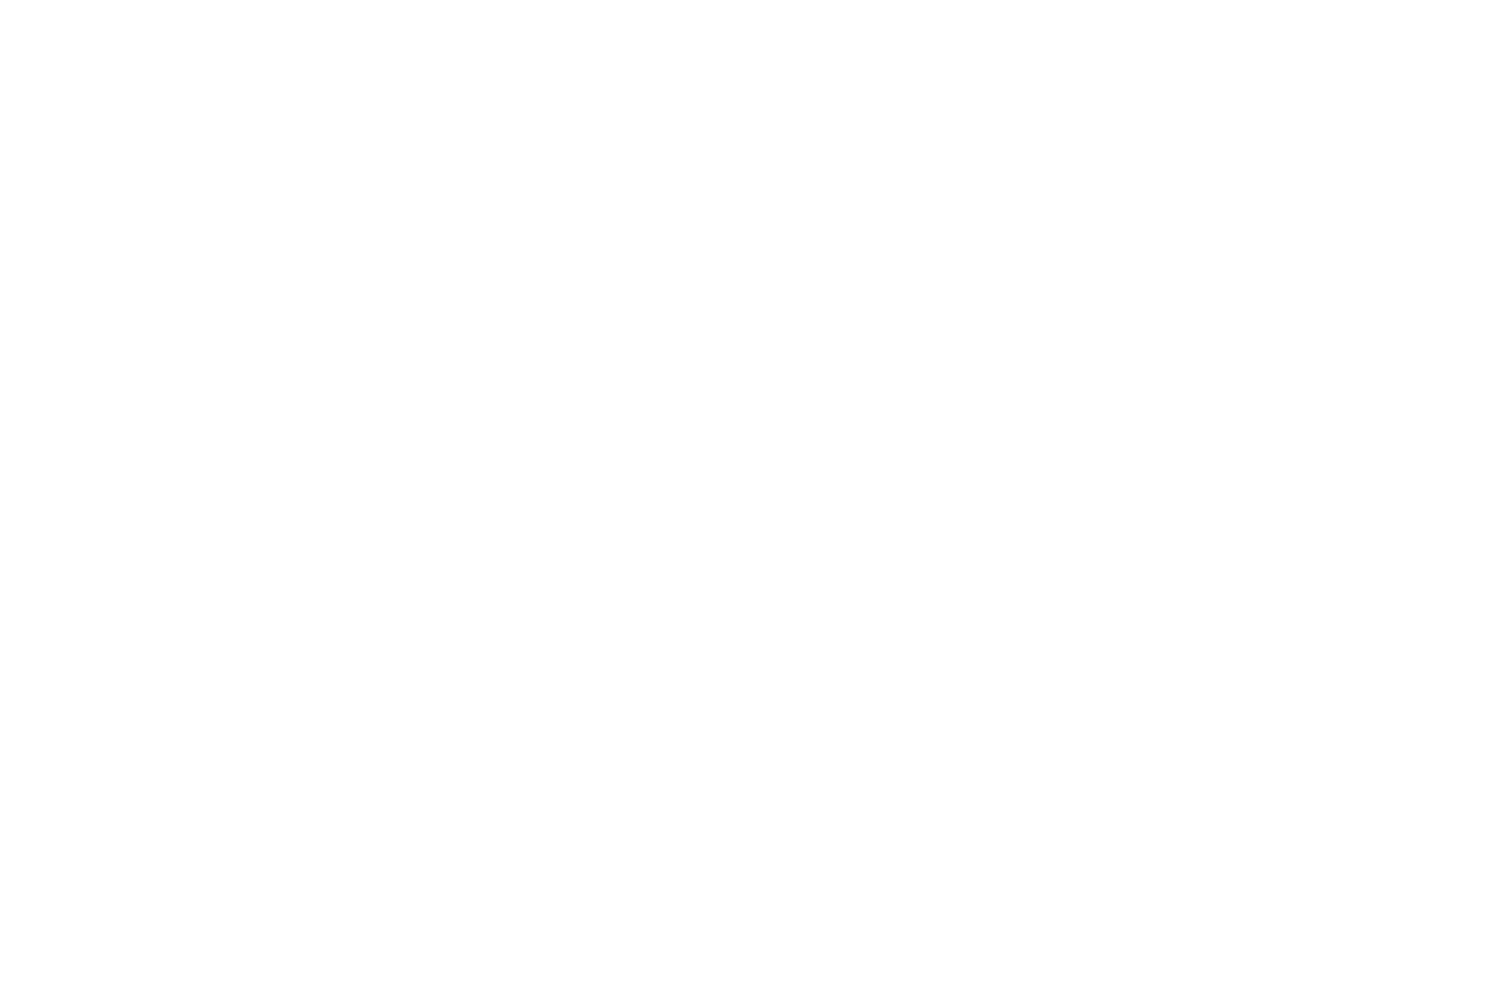 Dance Downtown